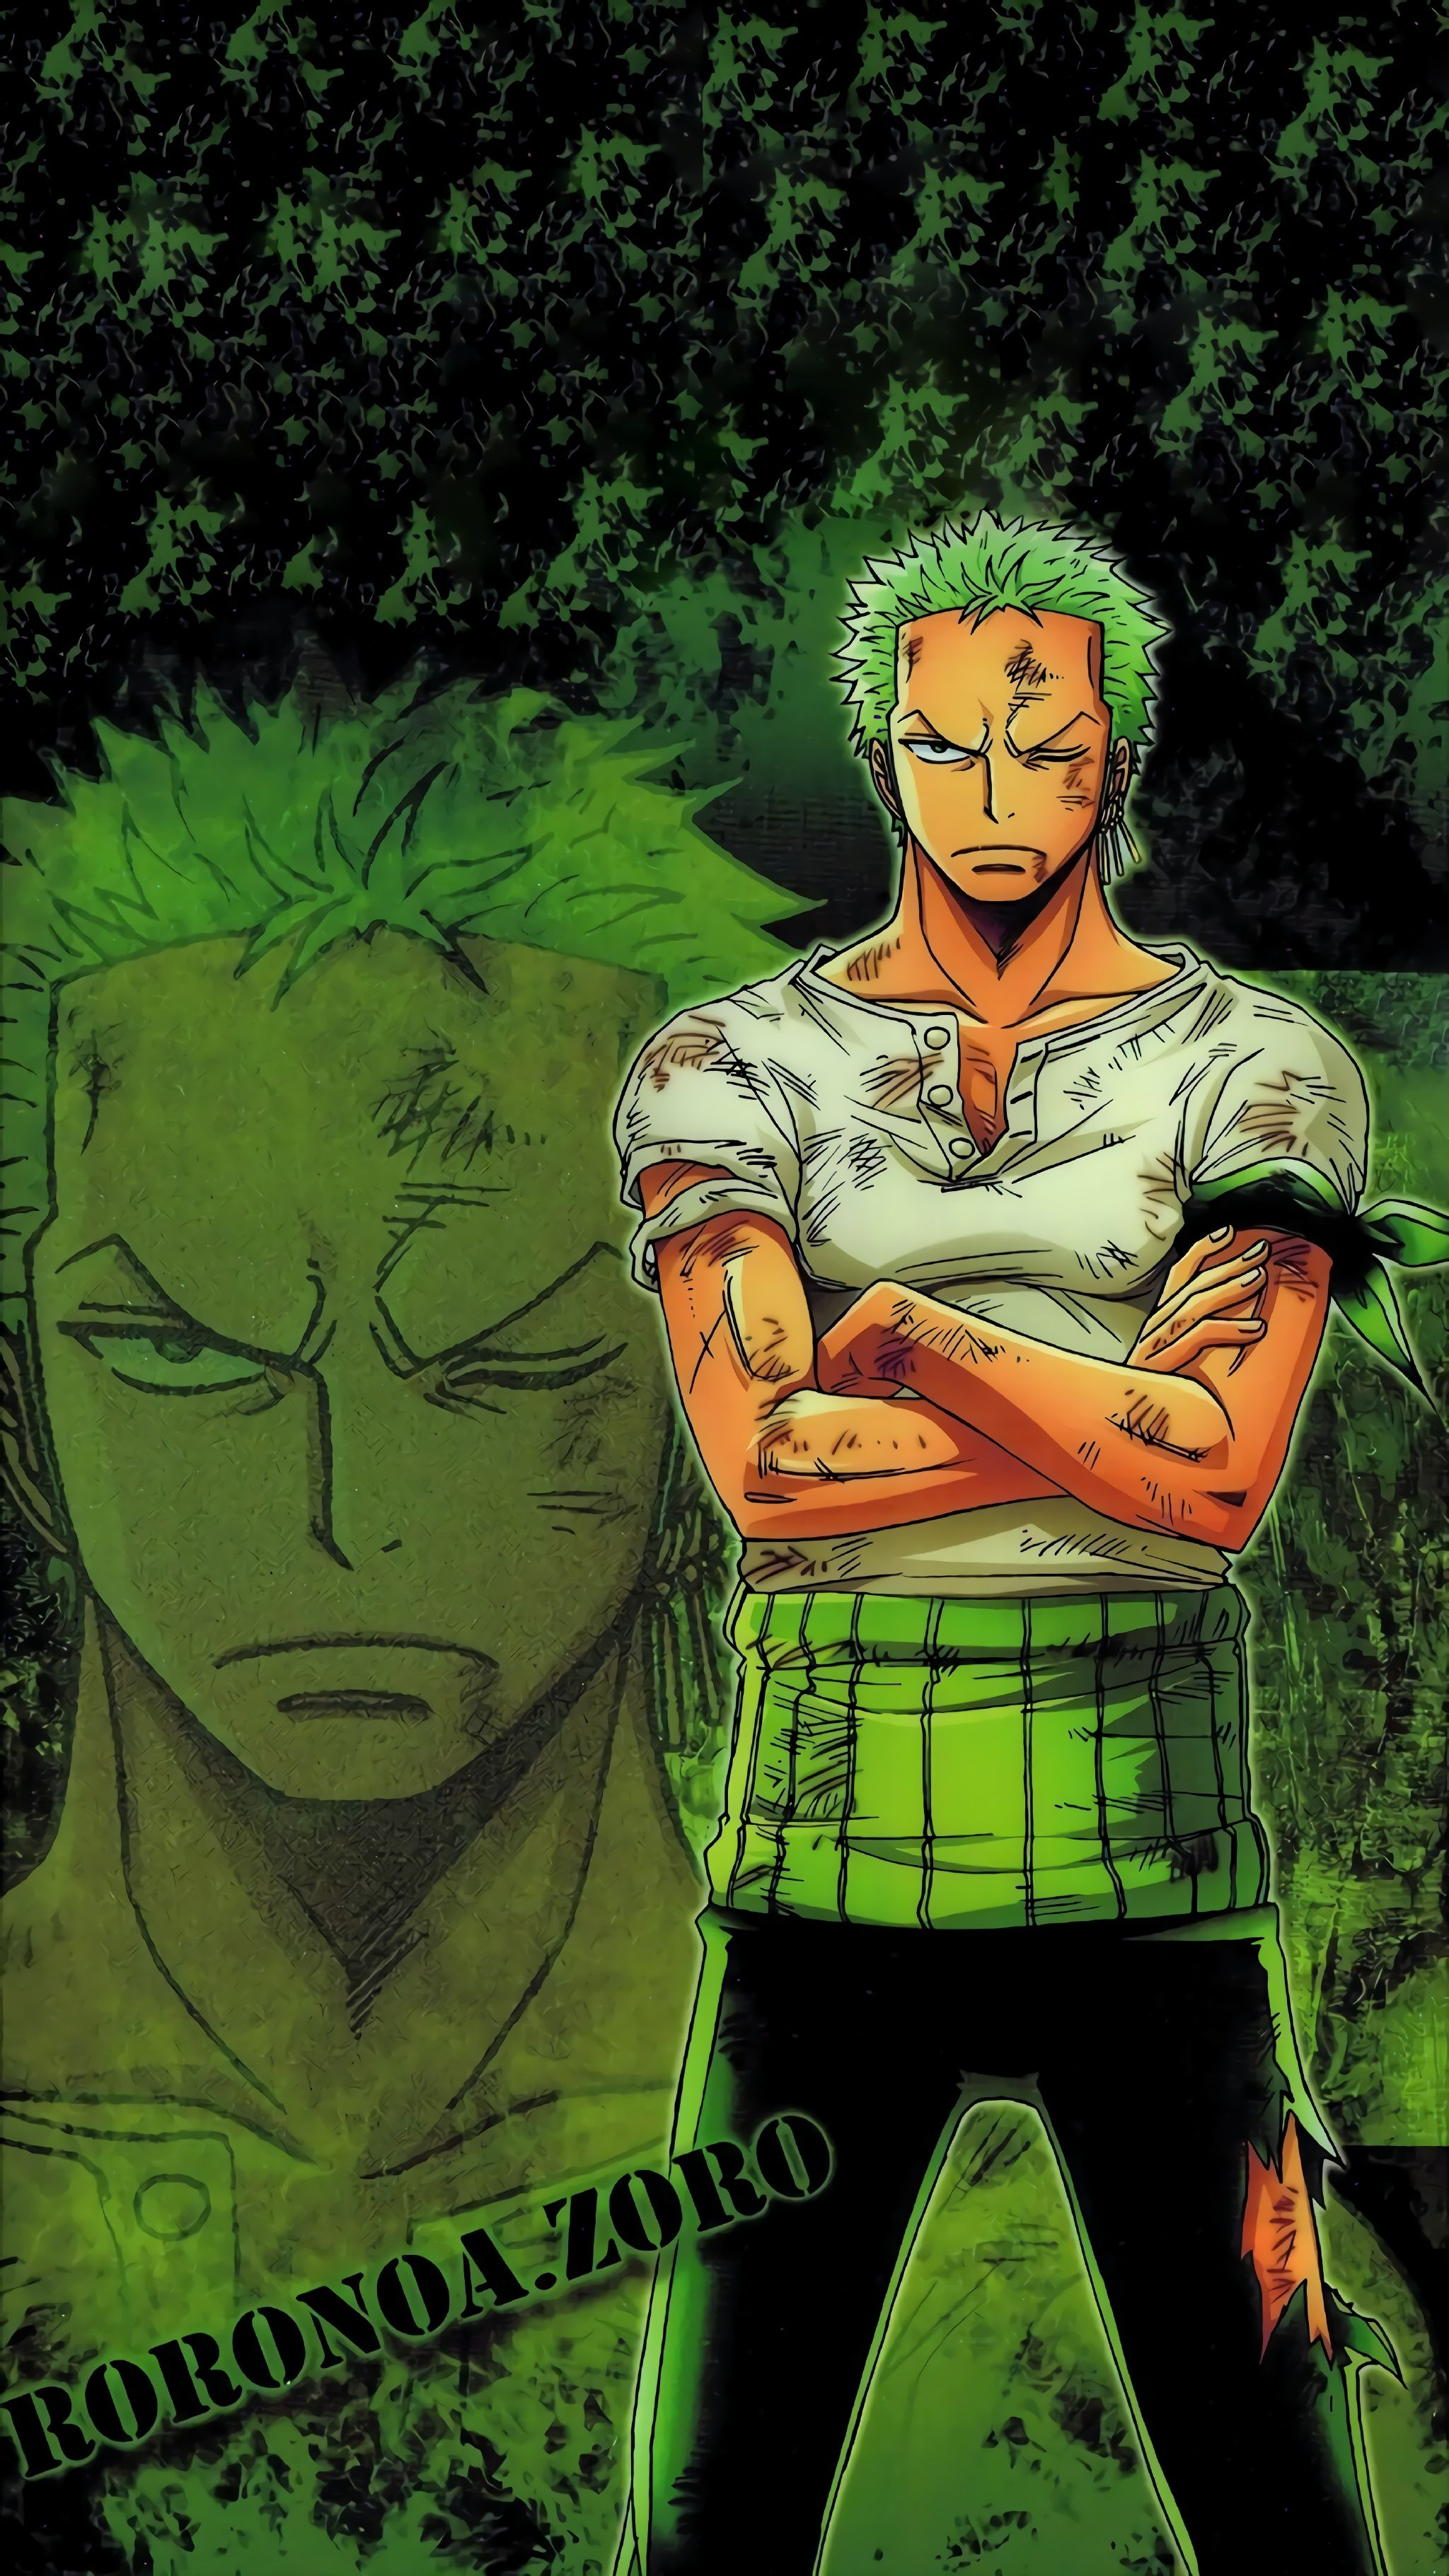 Pin By Shawn Gordon On One Piece Roronoa Zoro Zoro One Piece